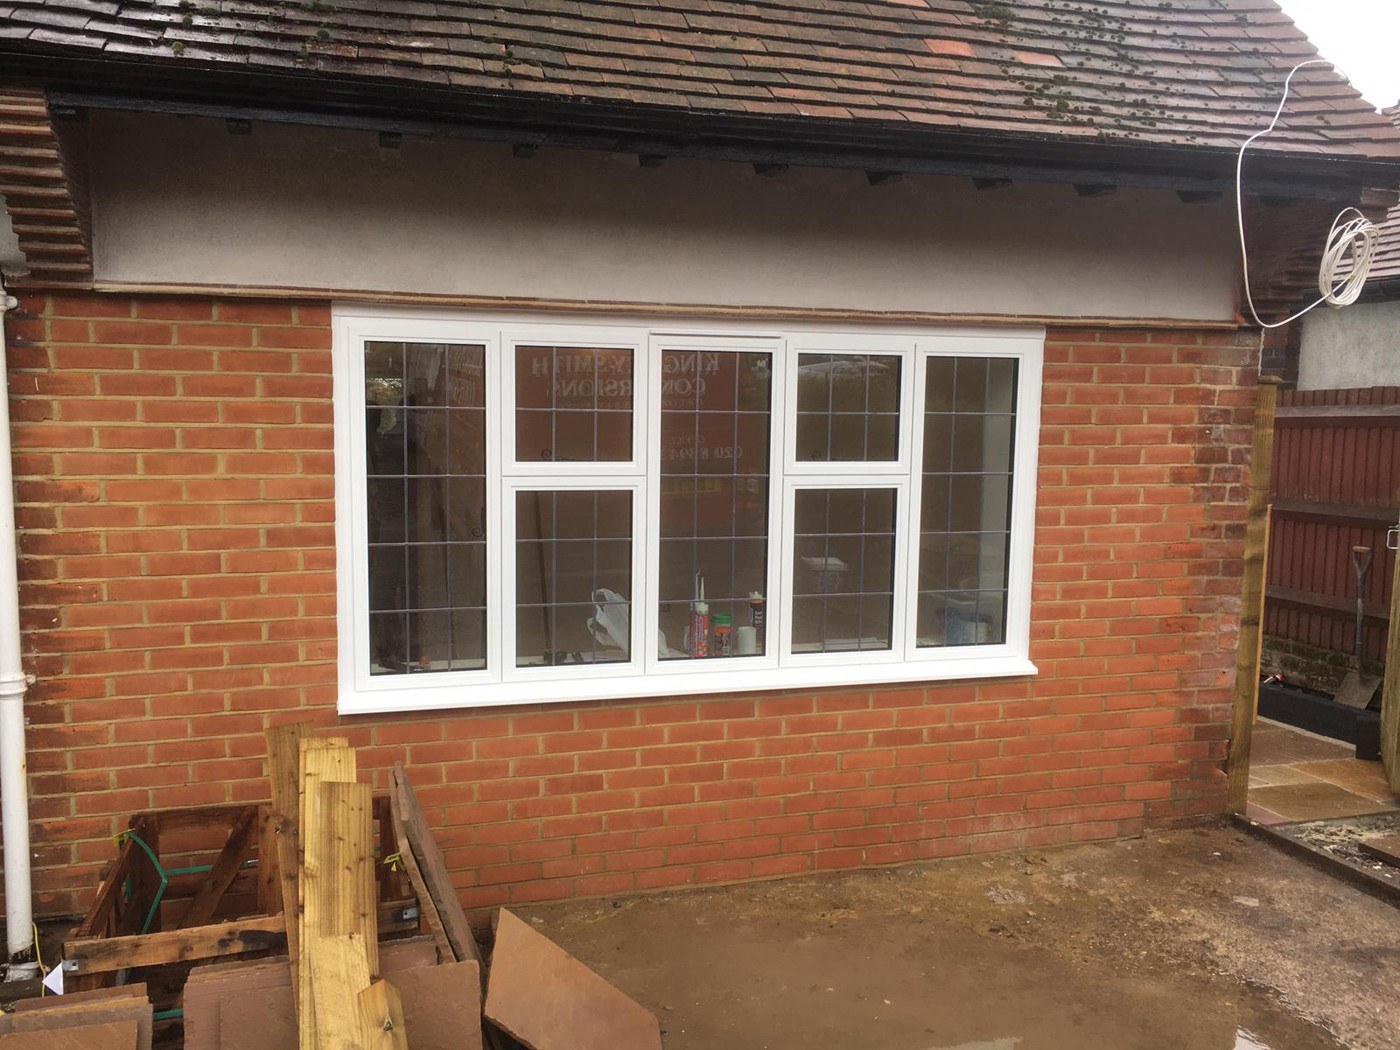 Smart Heritage windows to match existing windows in Banstead extension